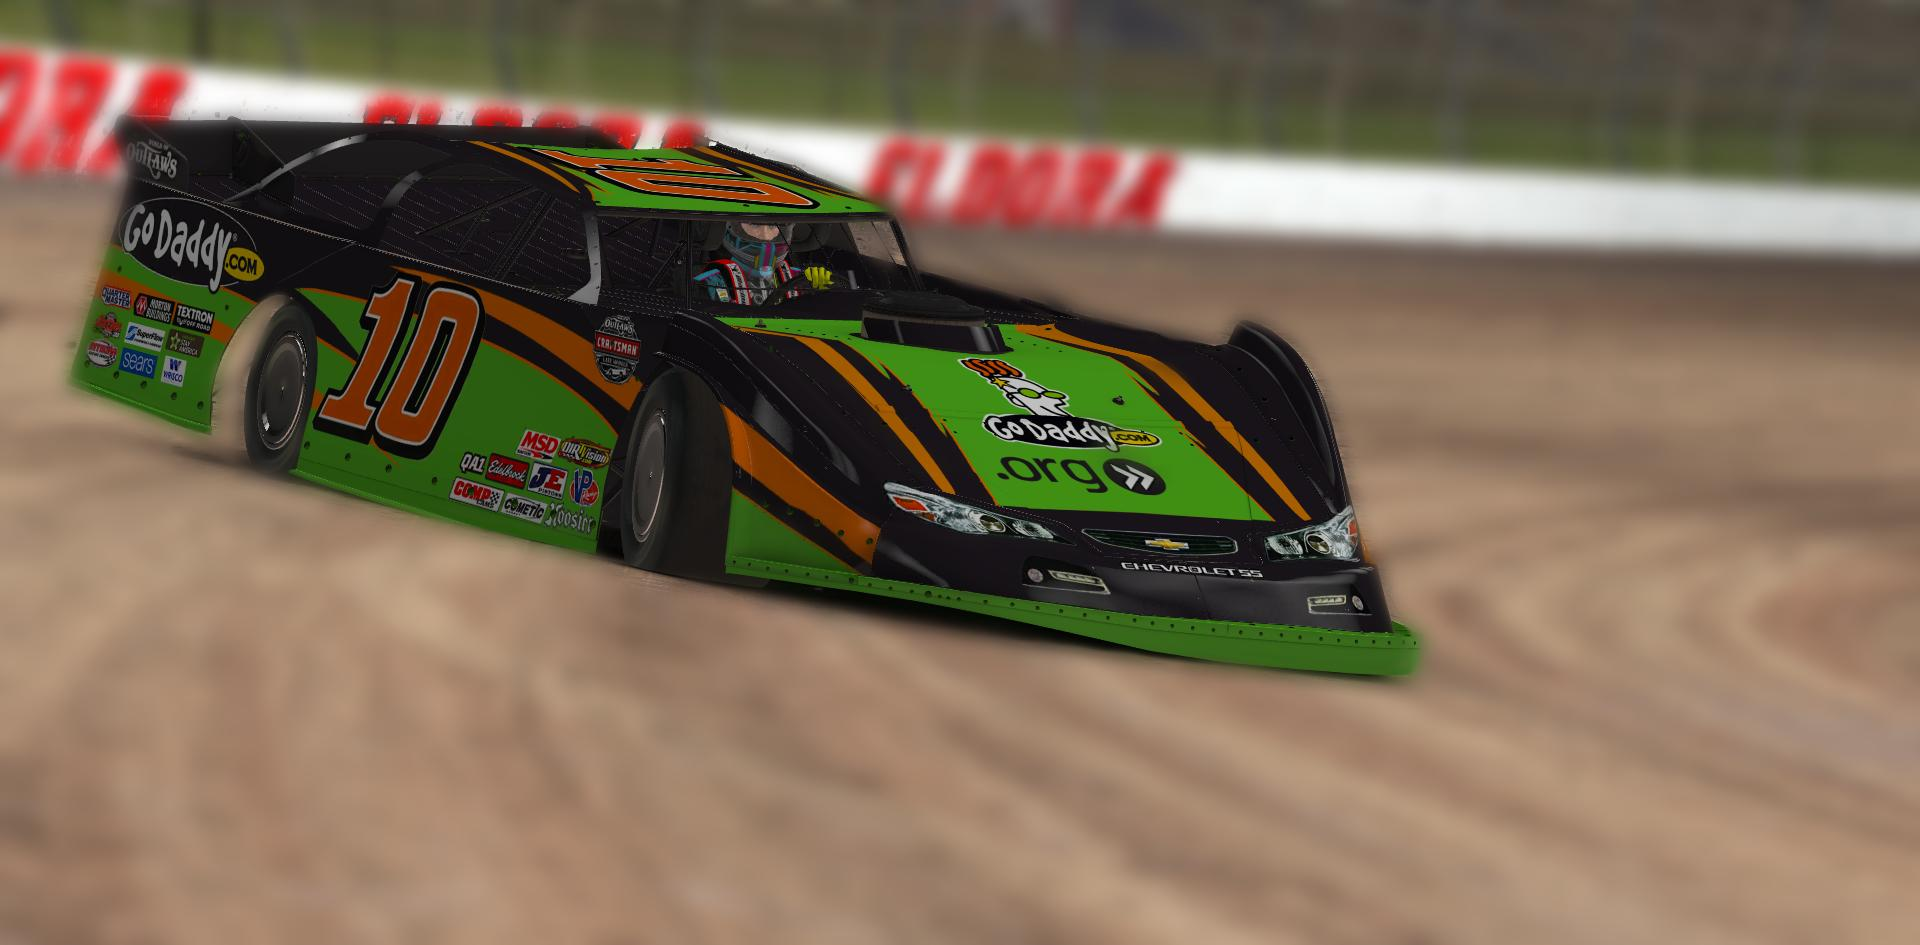 GoDaddy Dirt Late Model Chevrolet by Chris Nosowsky - Trading Paints